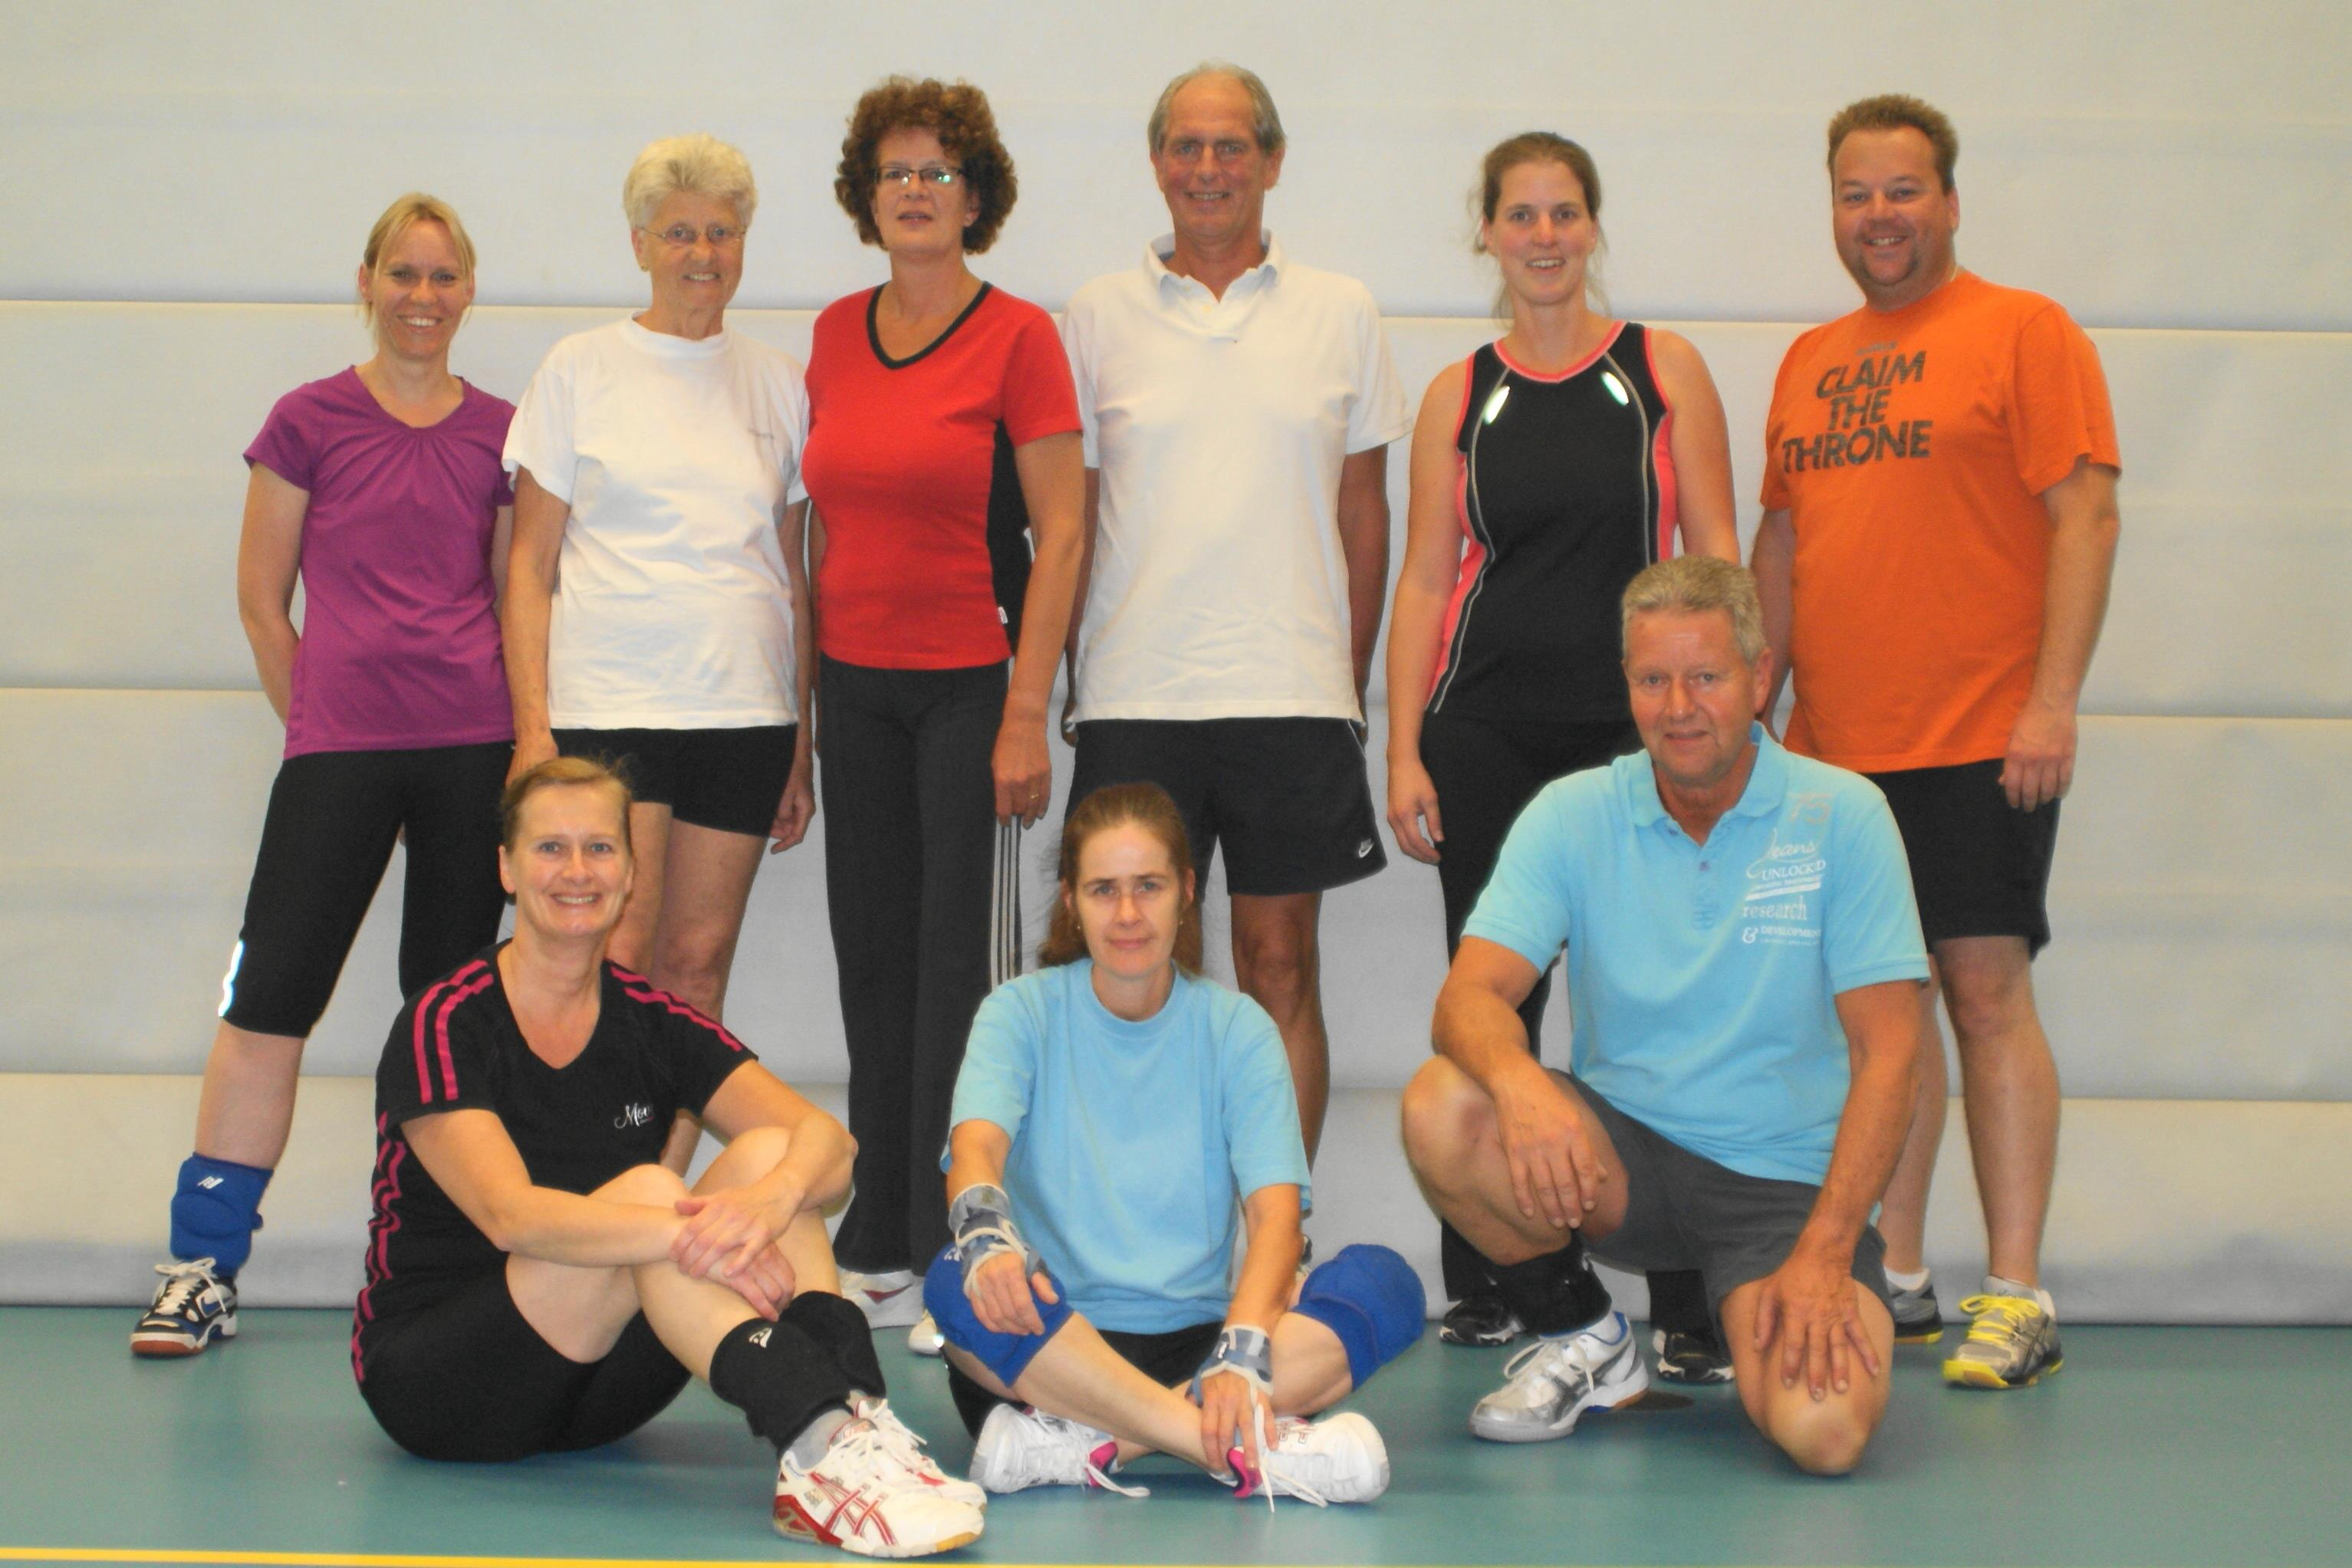 http://www.smashingvelsen.nl/uploads/images/teams/sv96-2014-2015-recreanten-1.jpg